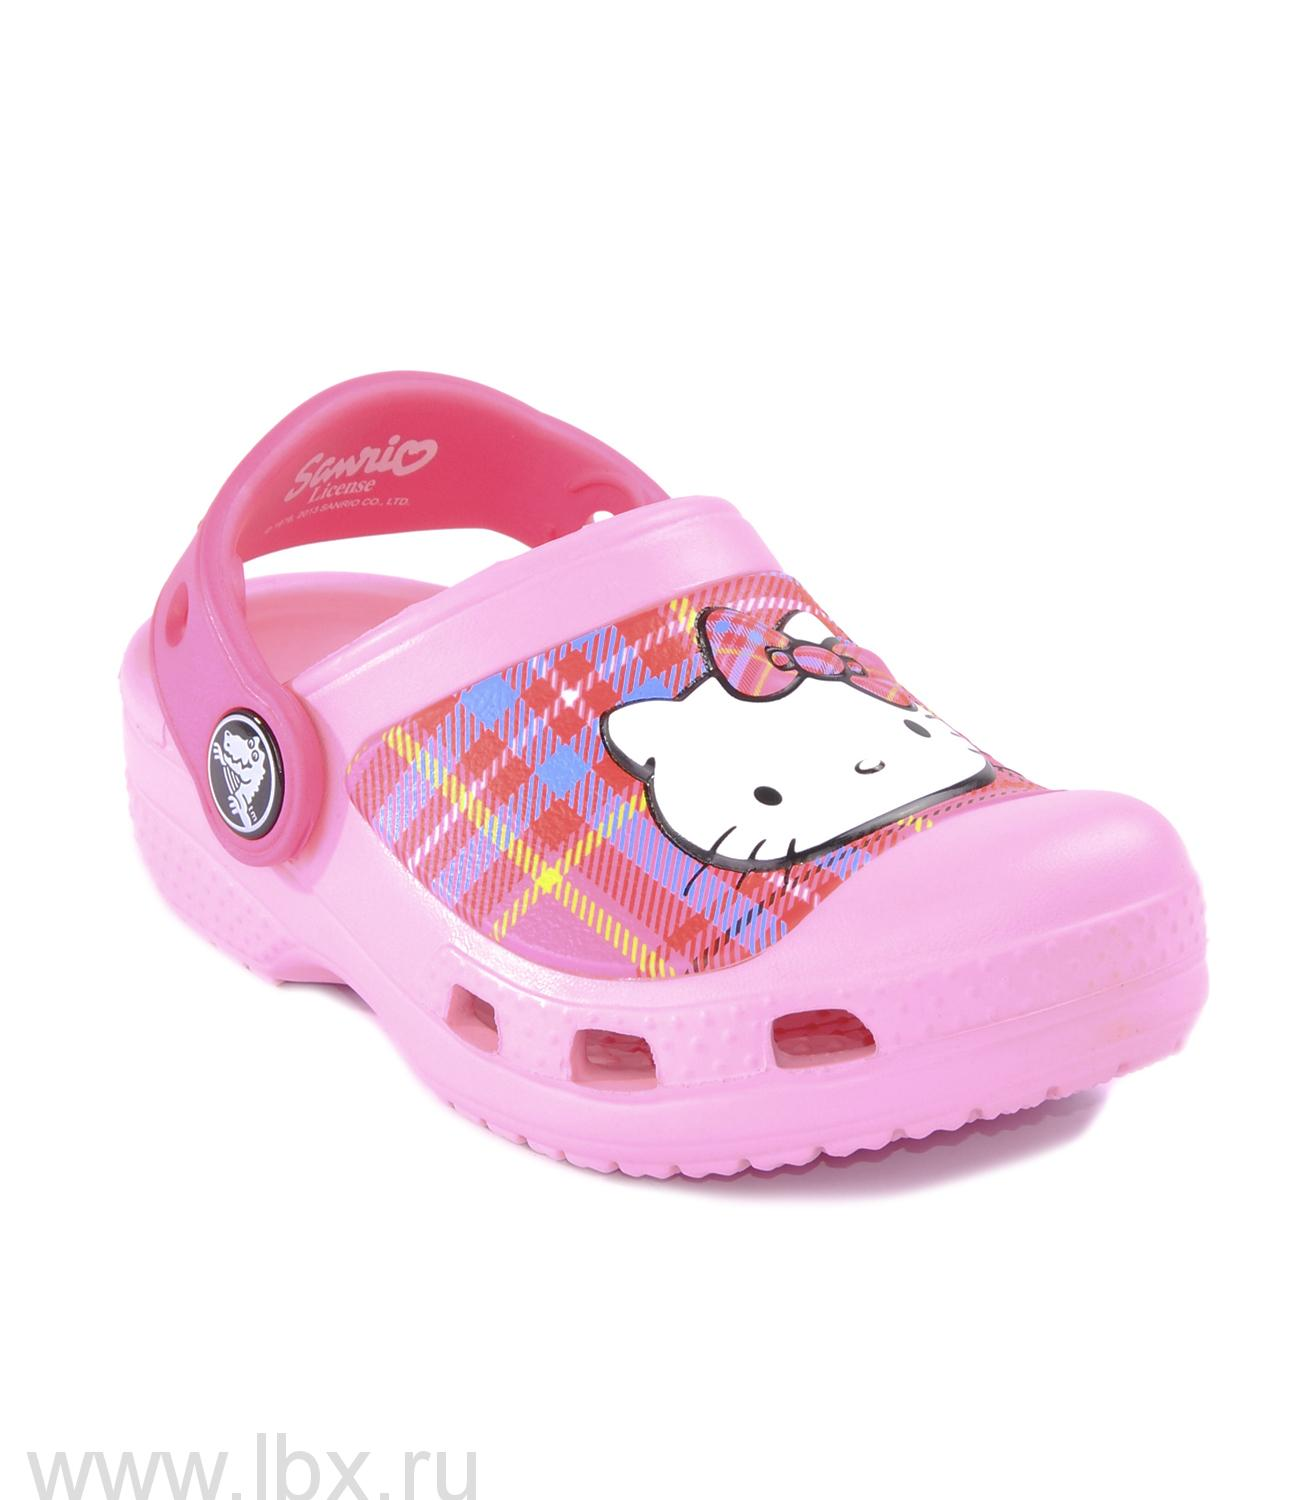 Сабо (Hello Kitty Plaid Clog Carnation/Neon Magenta) Хелло Китти Плейд Клог EU Карнейшн/Неон Магента, Crocs (Крокс)- увеличить фото